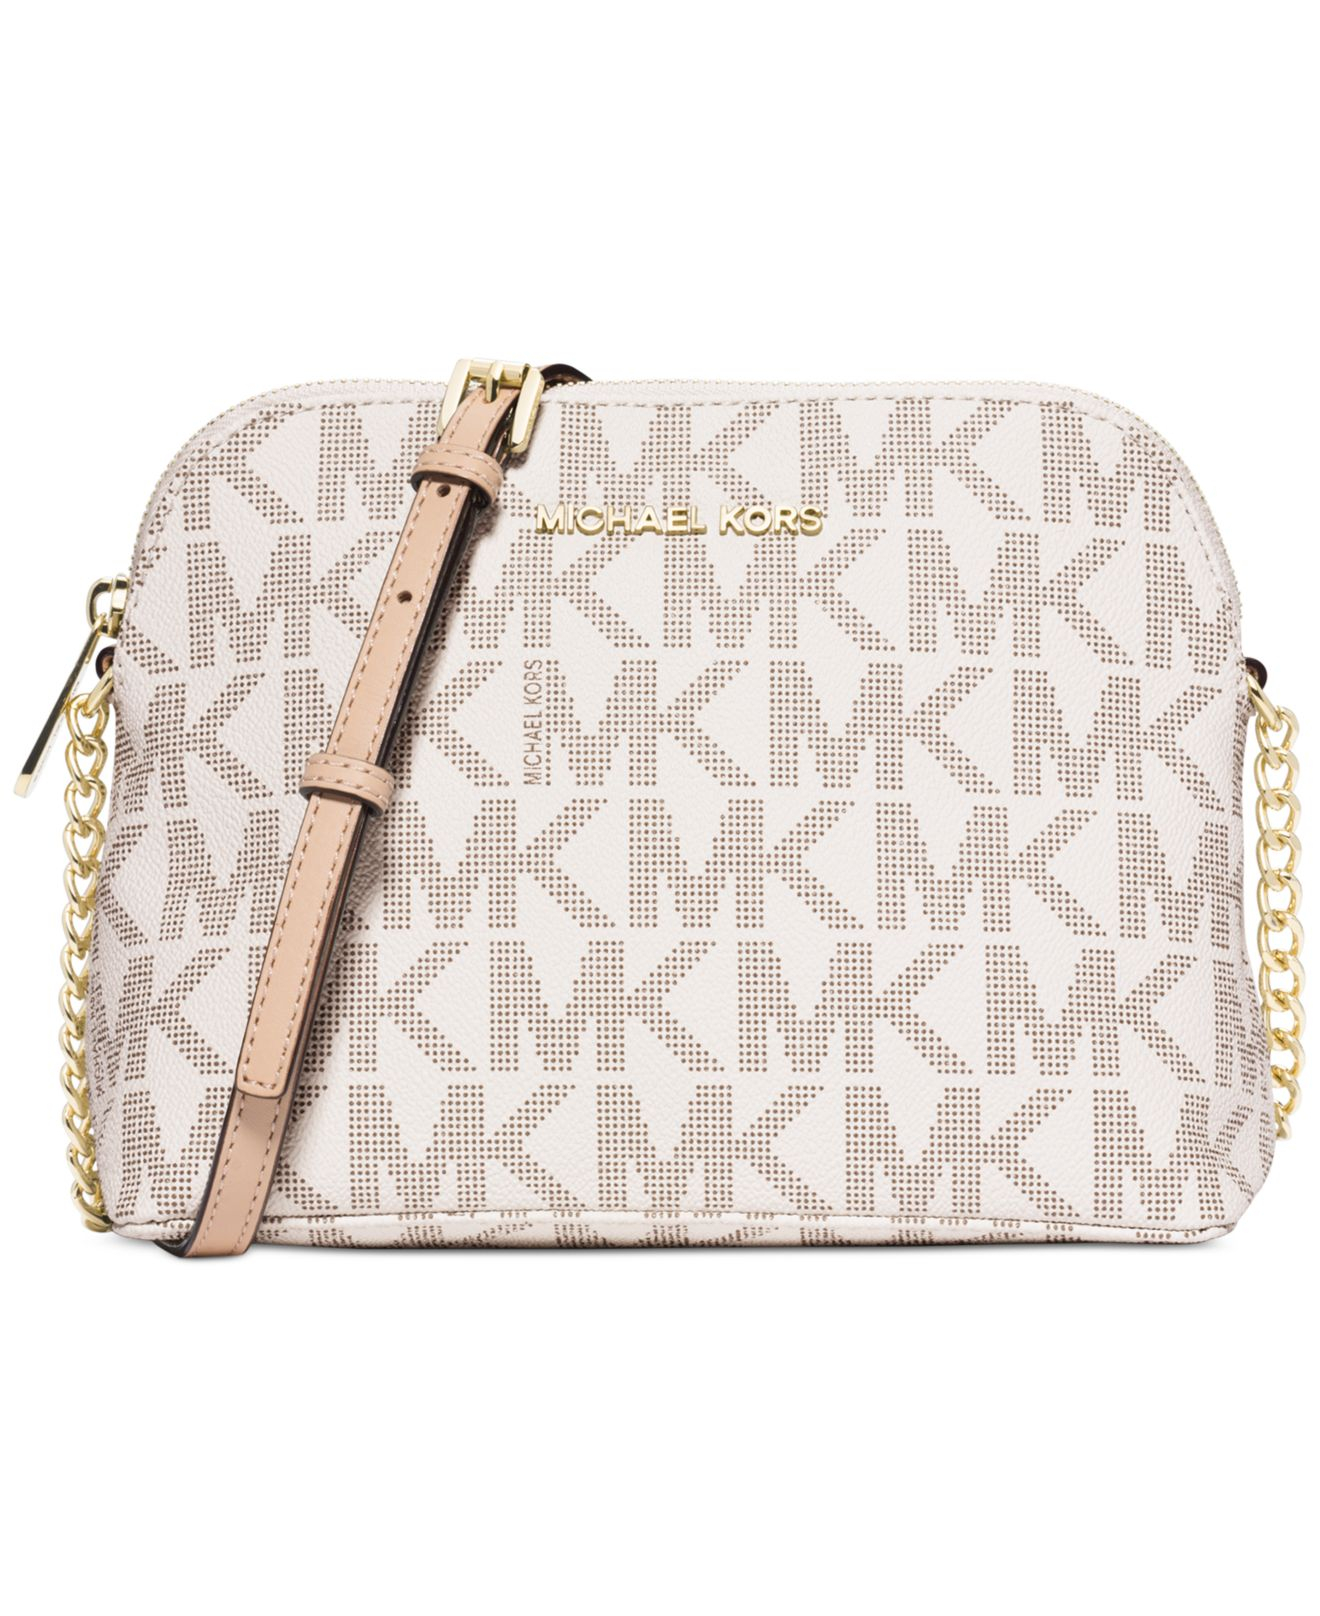 d474cf1d46fd8 Gallery. Previously sold at  Macy s · Women s Michael Kors Cindy ...